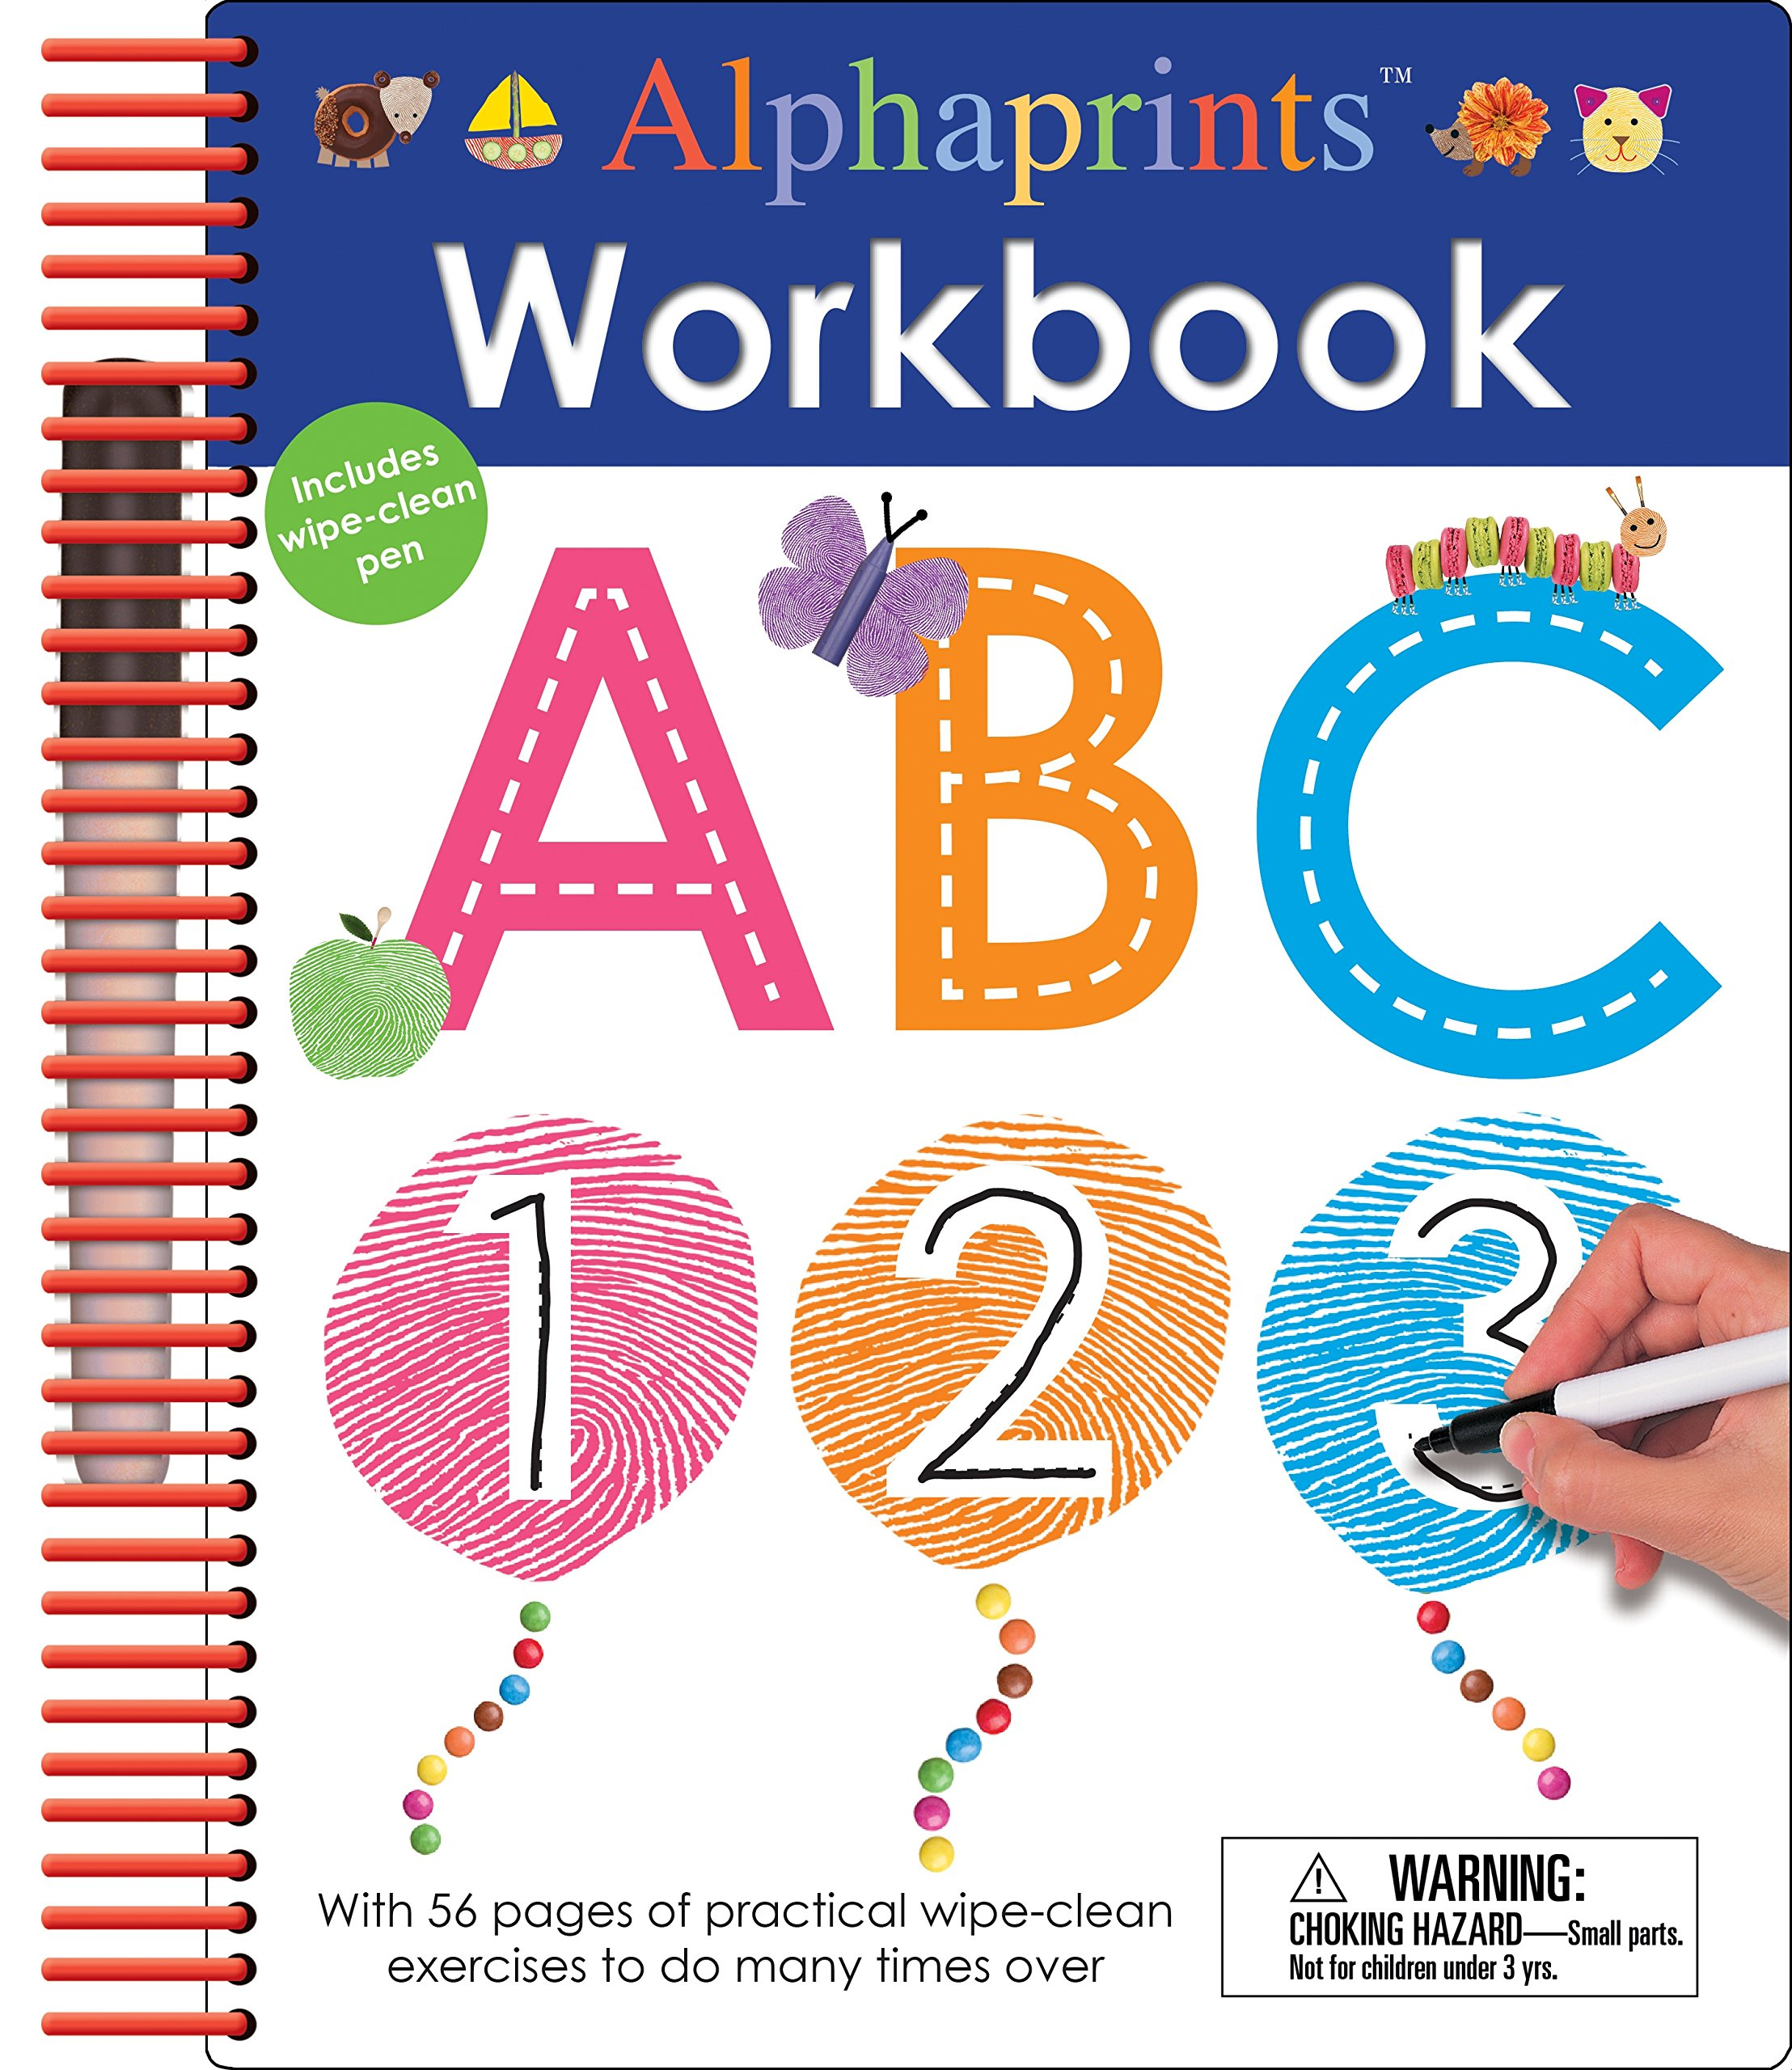 Alphaprints Clean Workbook Activity Books product image